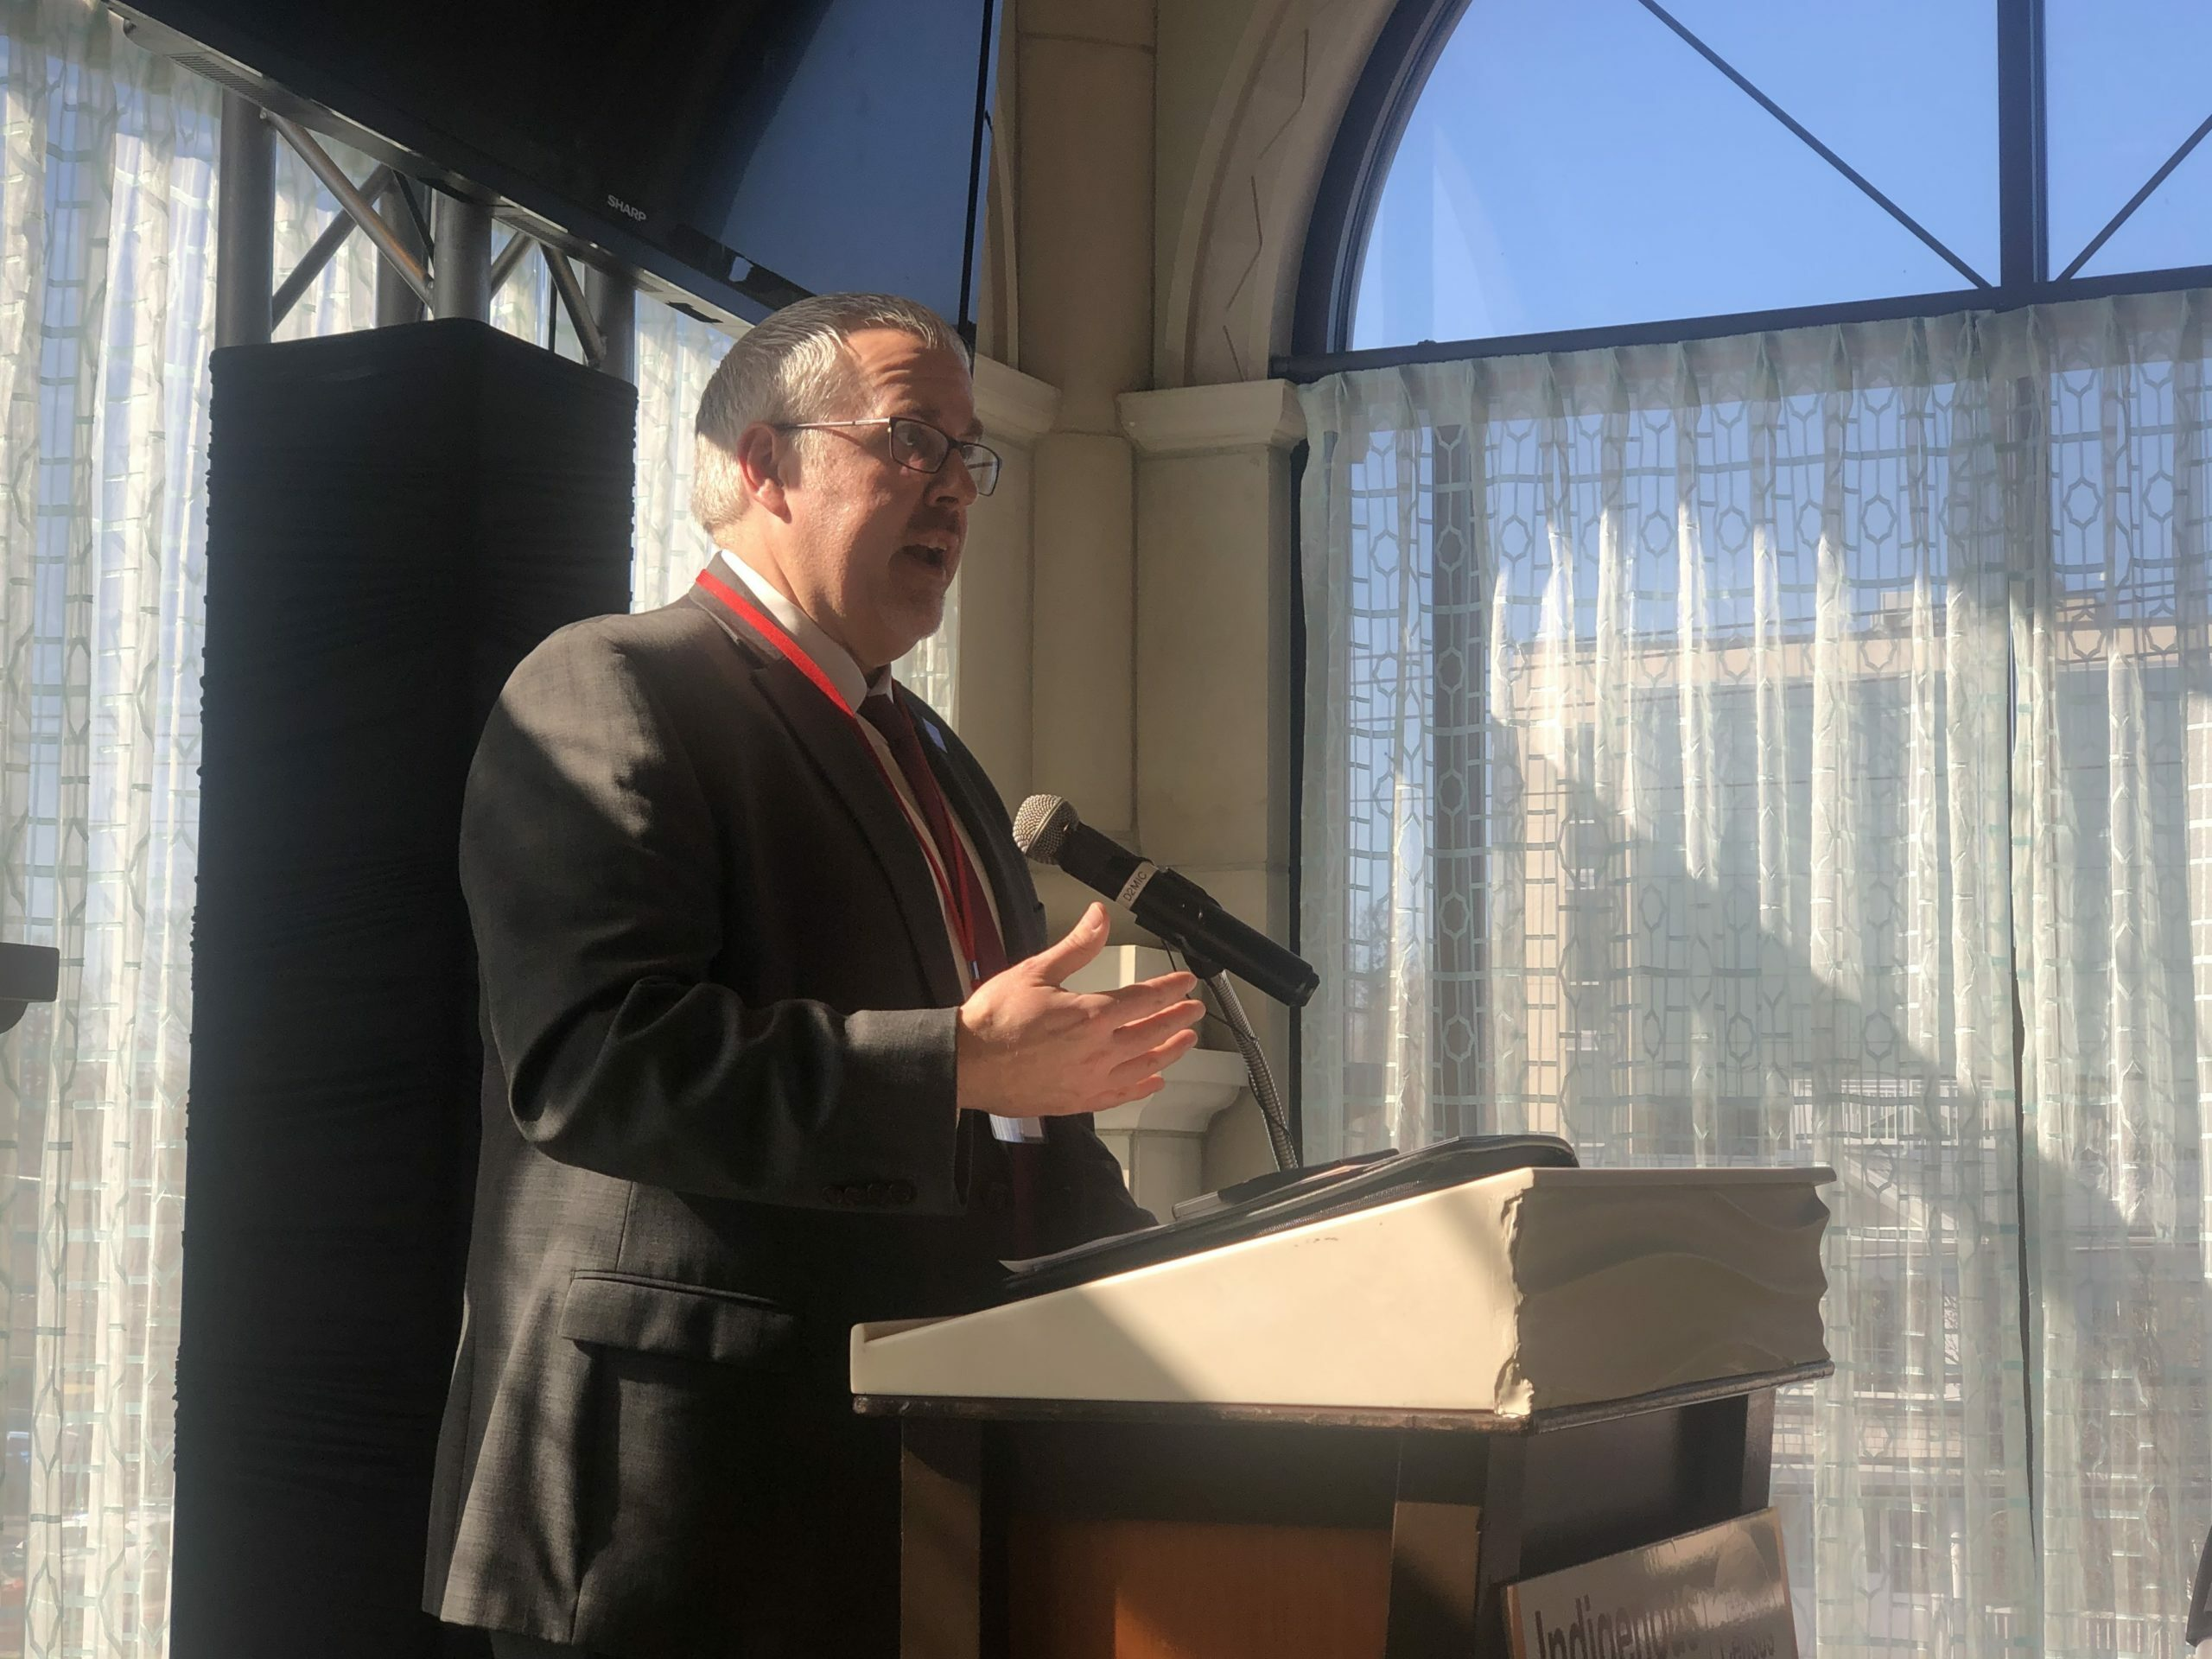 U.S. Census Bureau Regional Director Jeff Behler at a forum for preparing Native American tribes to rally their communities to fill out the census in February.